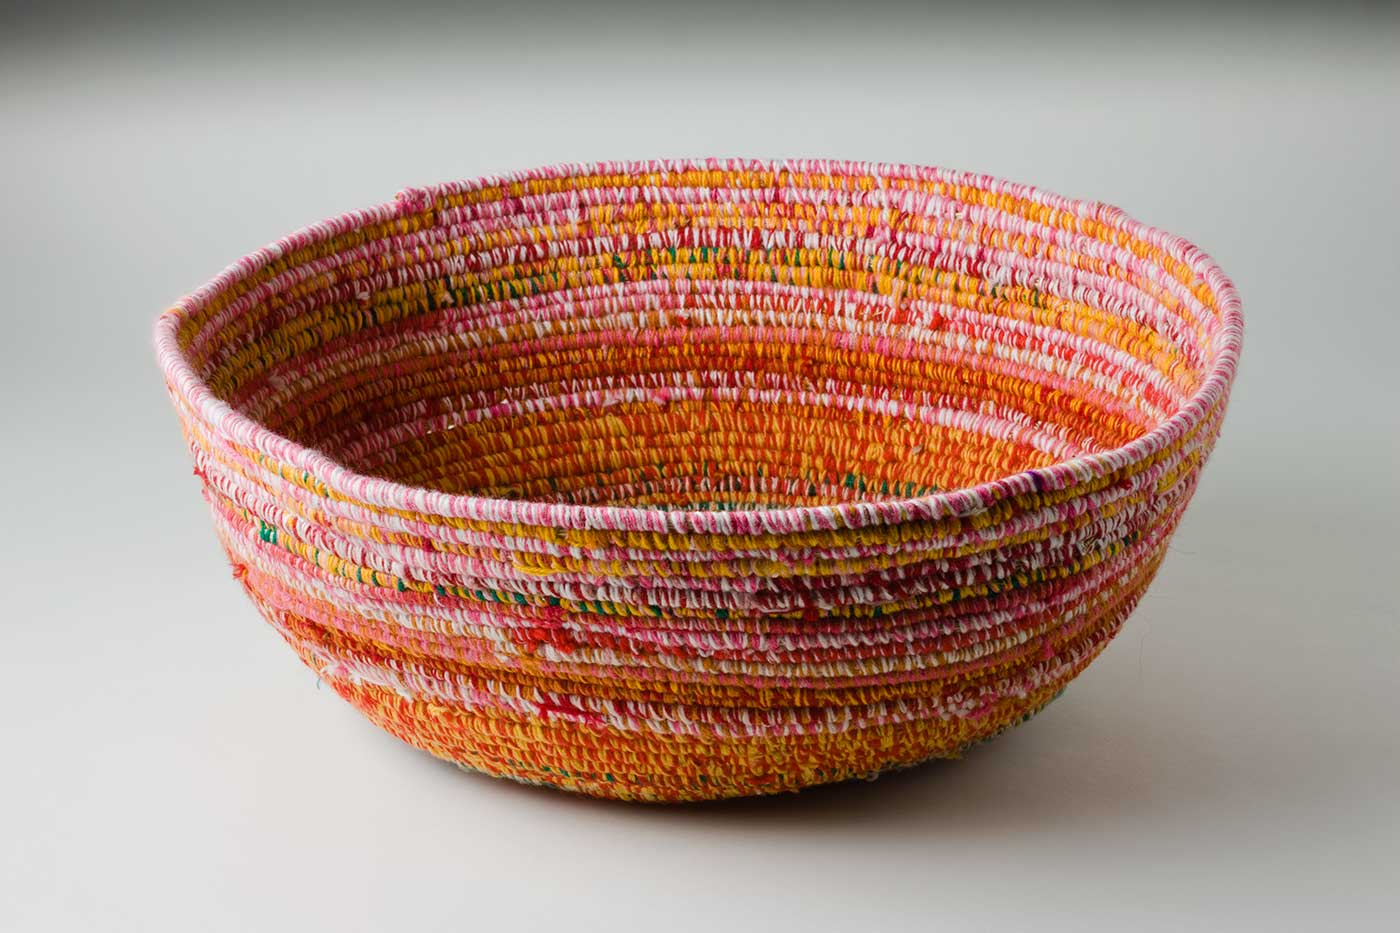 An oval coiled multicoloured yarn and plant fibre basket. The plant fibre in the centre of the basket is covered by brown-blue yarn, followed by horizontal alternate yarn coverings over the fibre. The yarn colours are green-yellow, red-yellow, red-white, red-green, green-white, pink-white, red-brown, pink-brown, and yellow pink. The top plant fibre is covered by pink-white yarn.